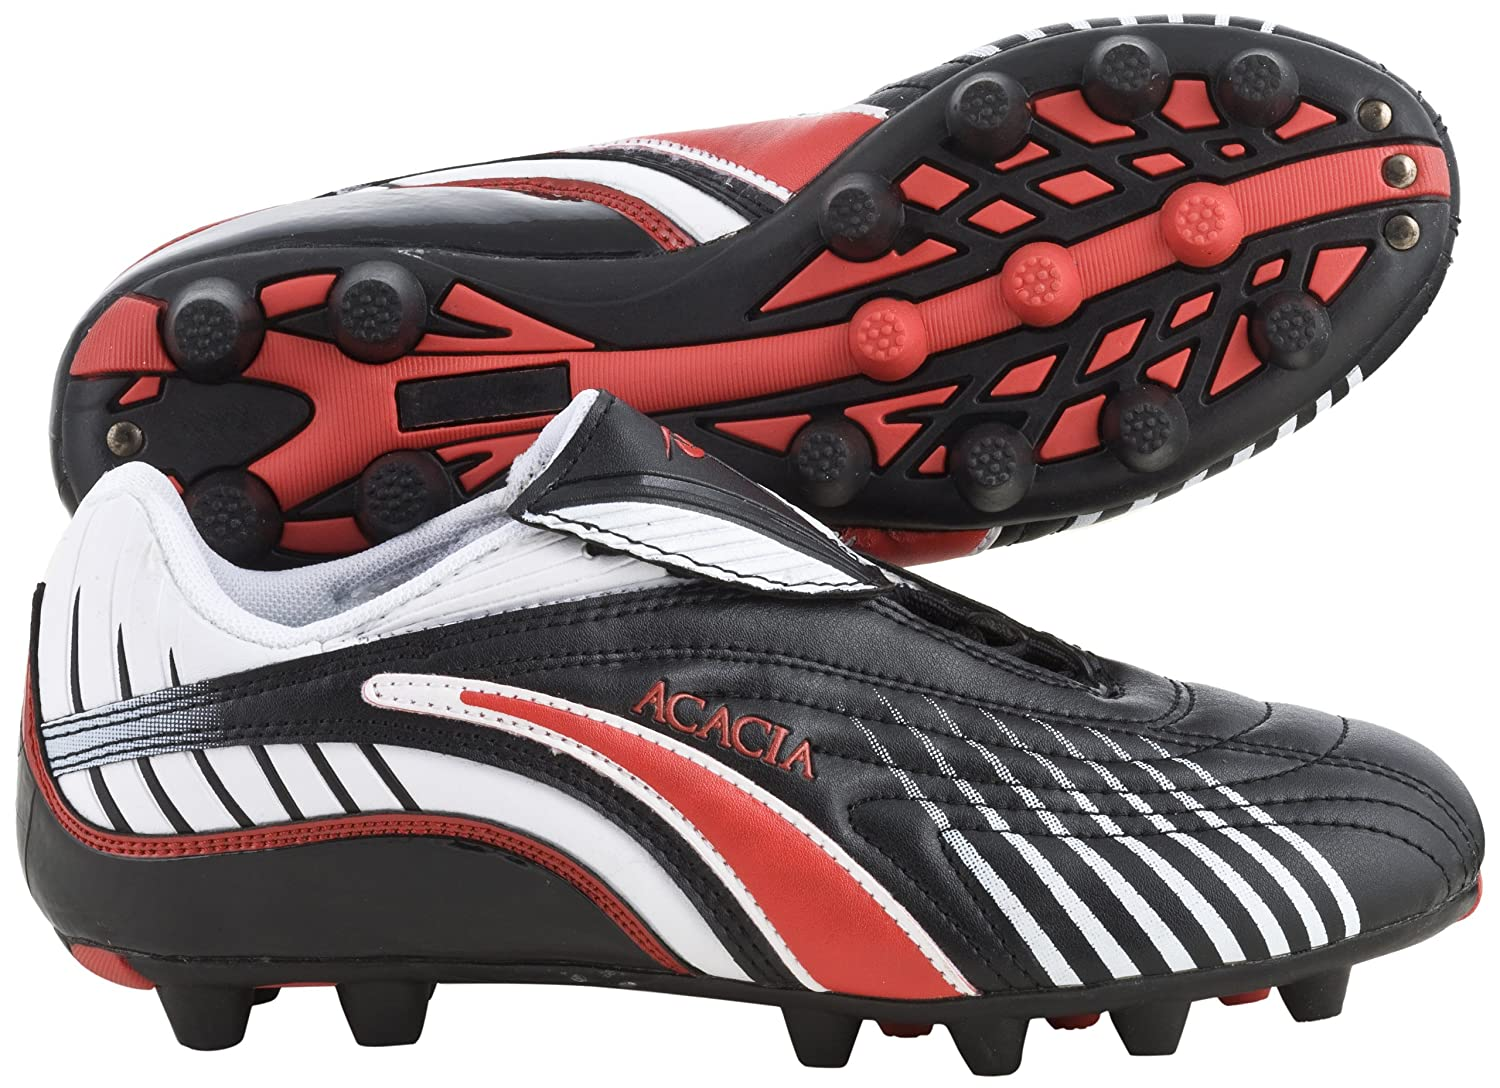 Acacia Classic Soccer Shoes